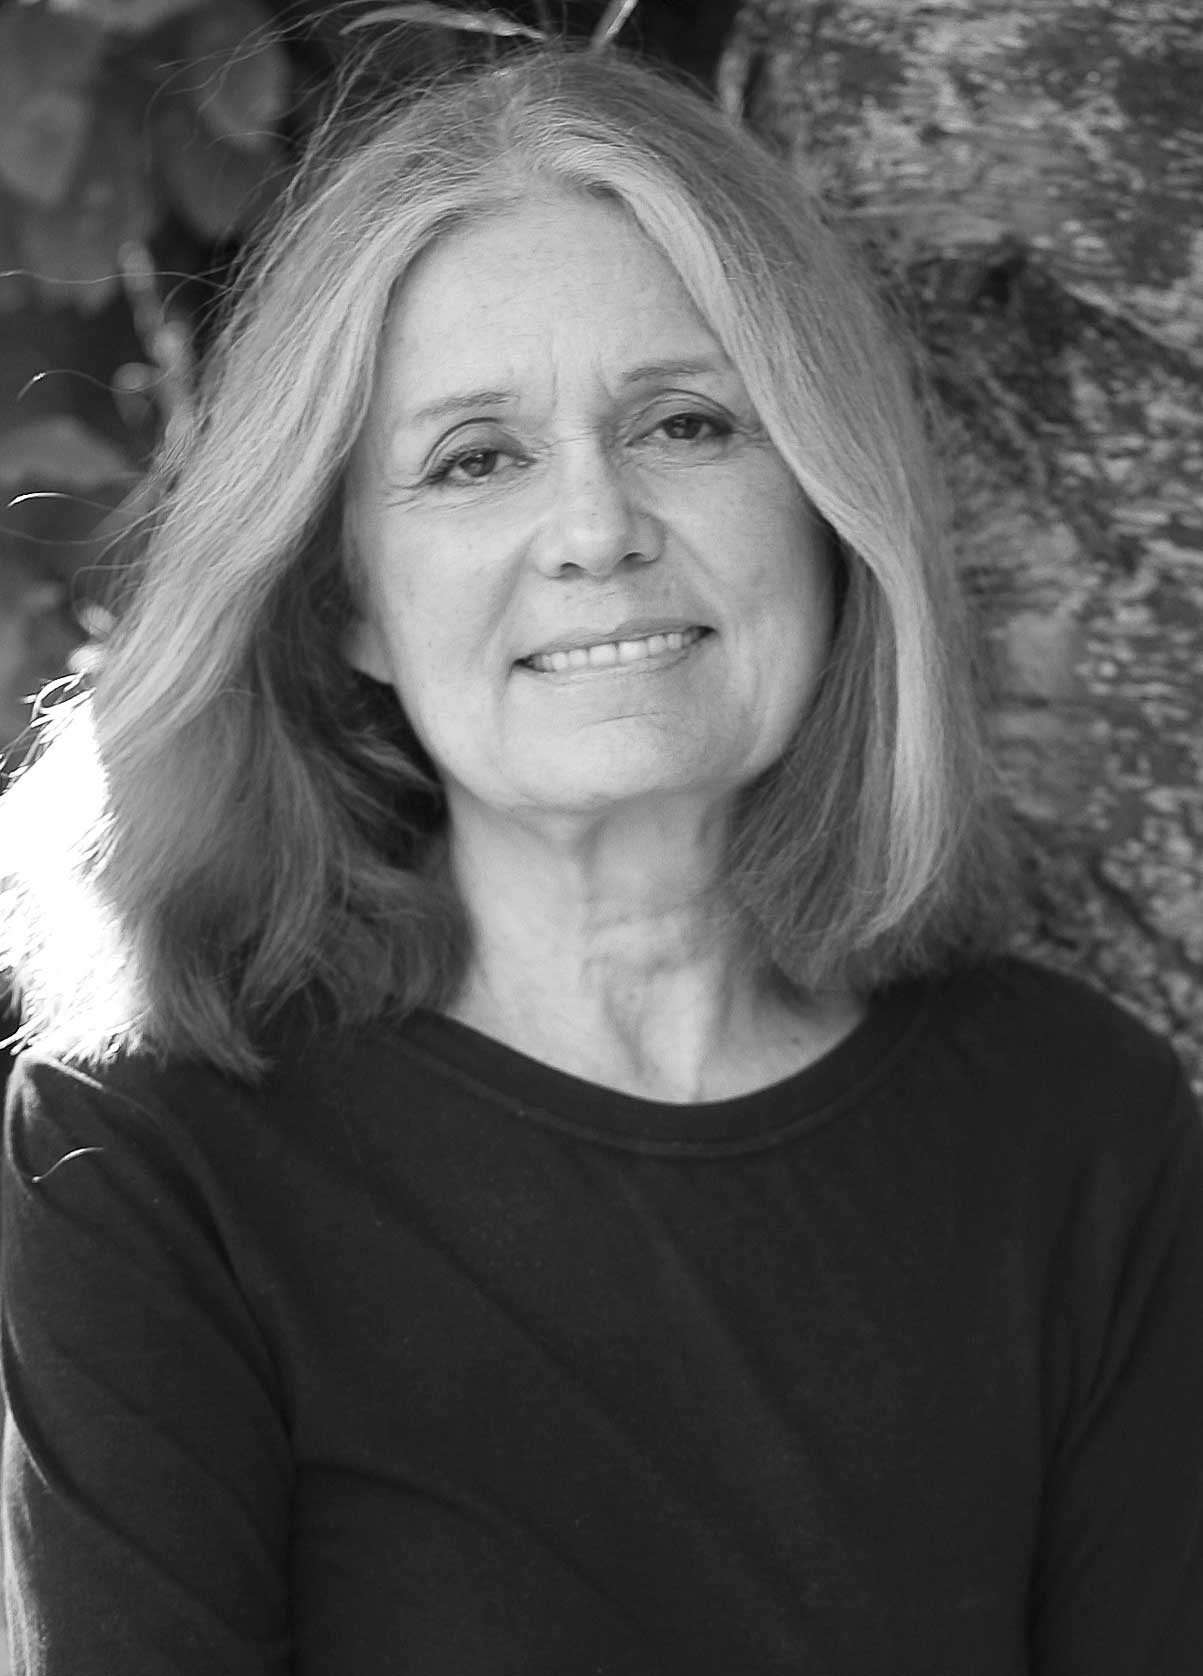 gloria-steinem-author-publi.jpg